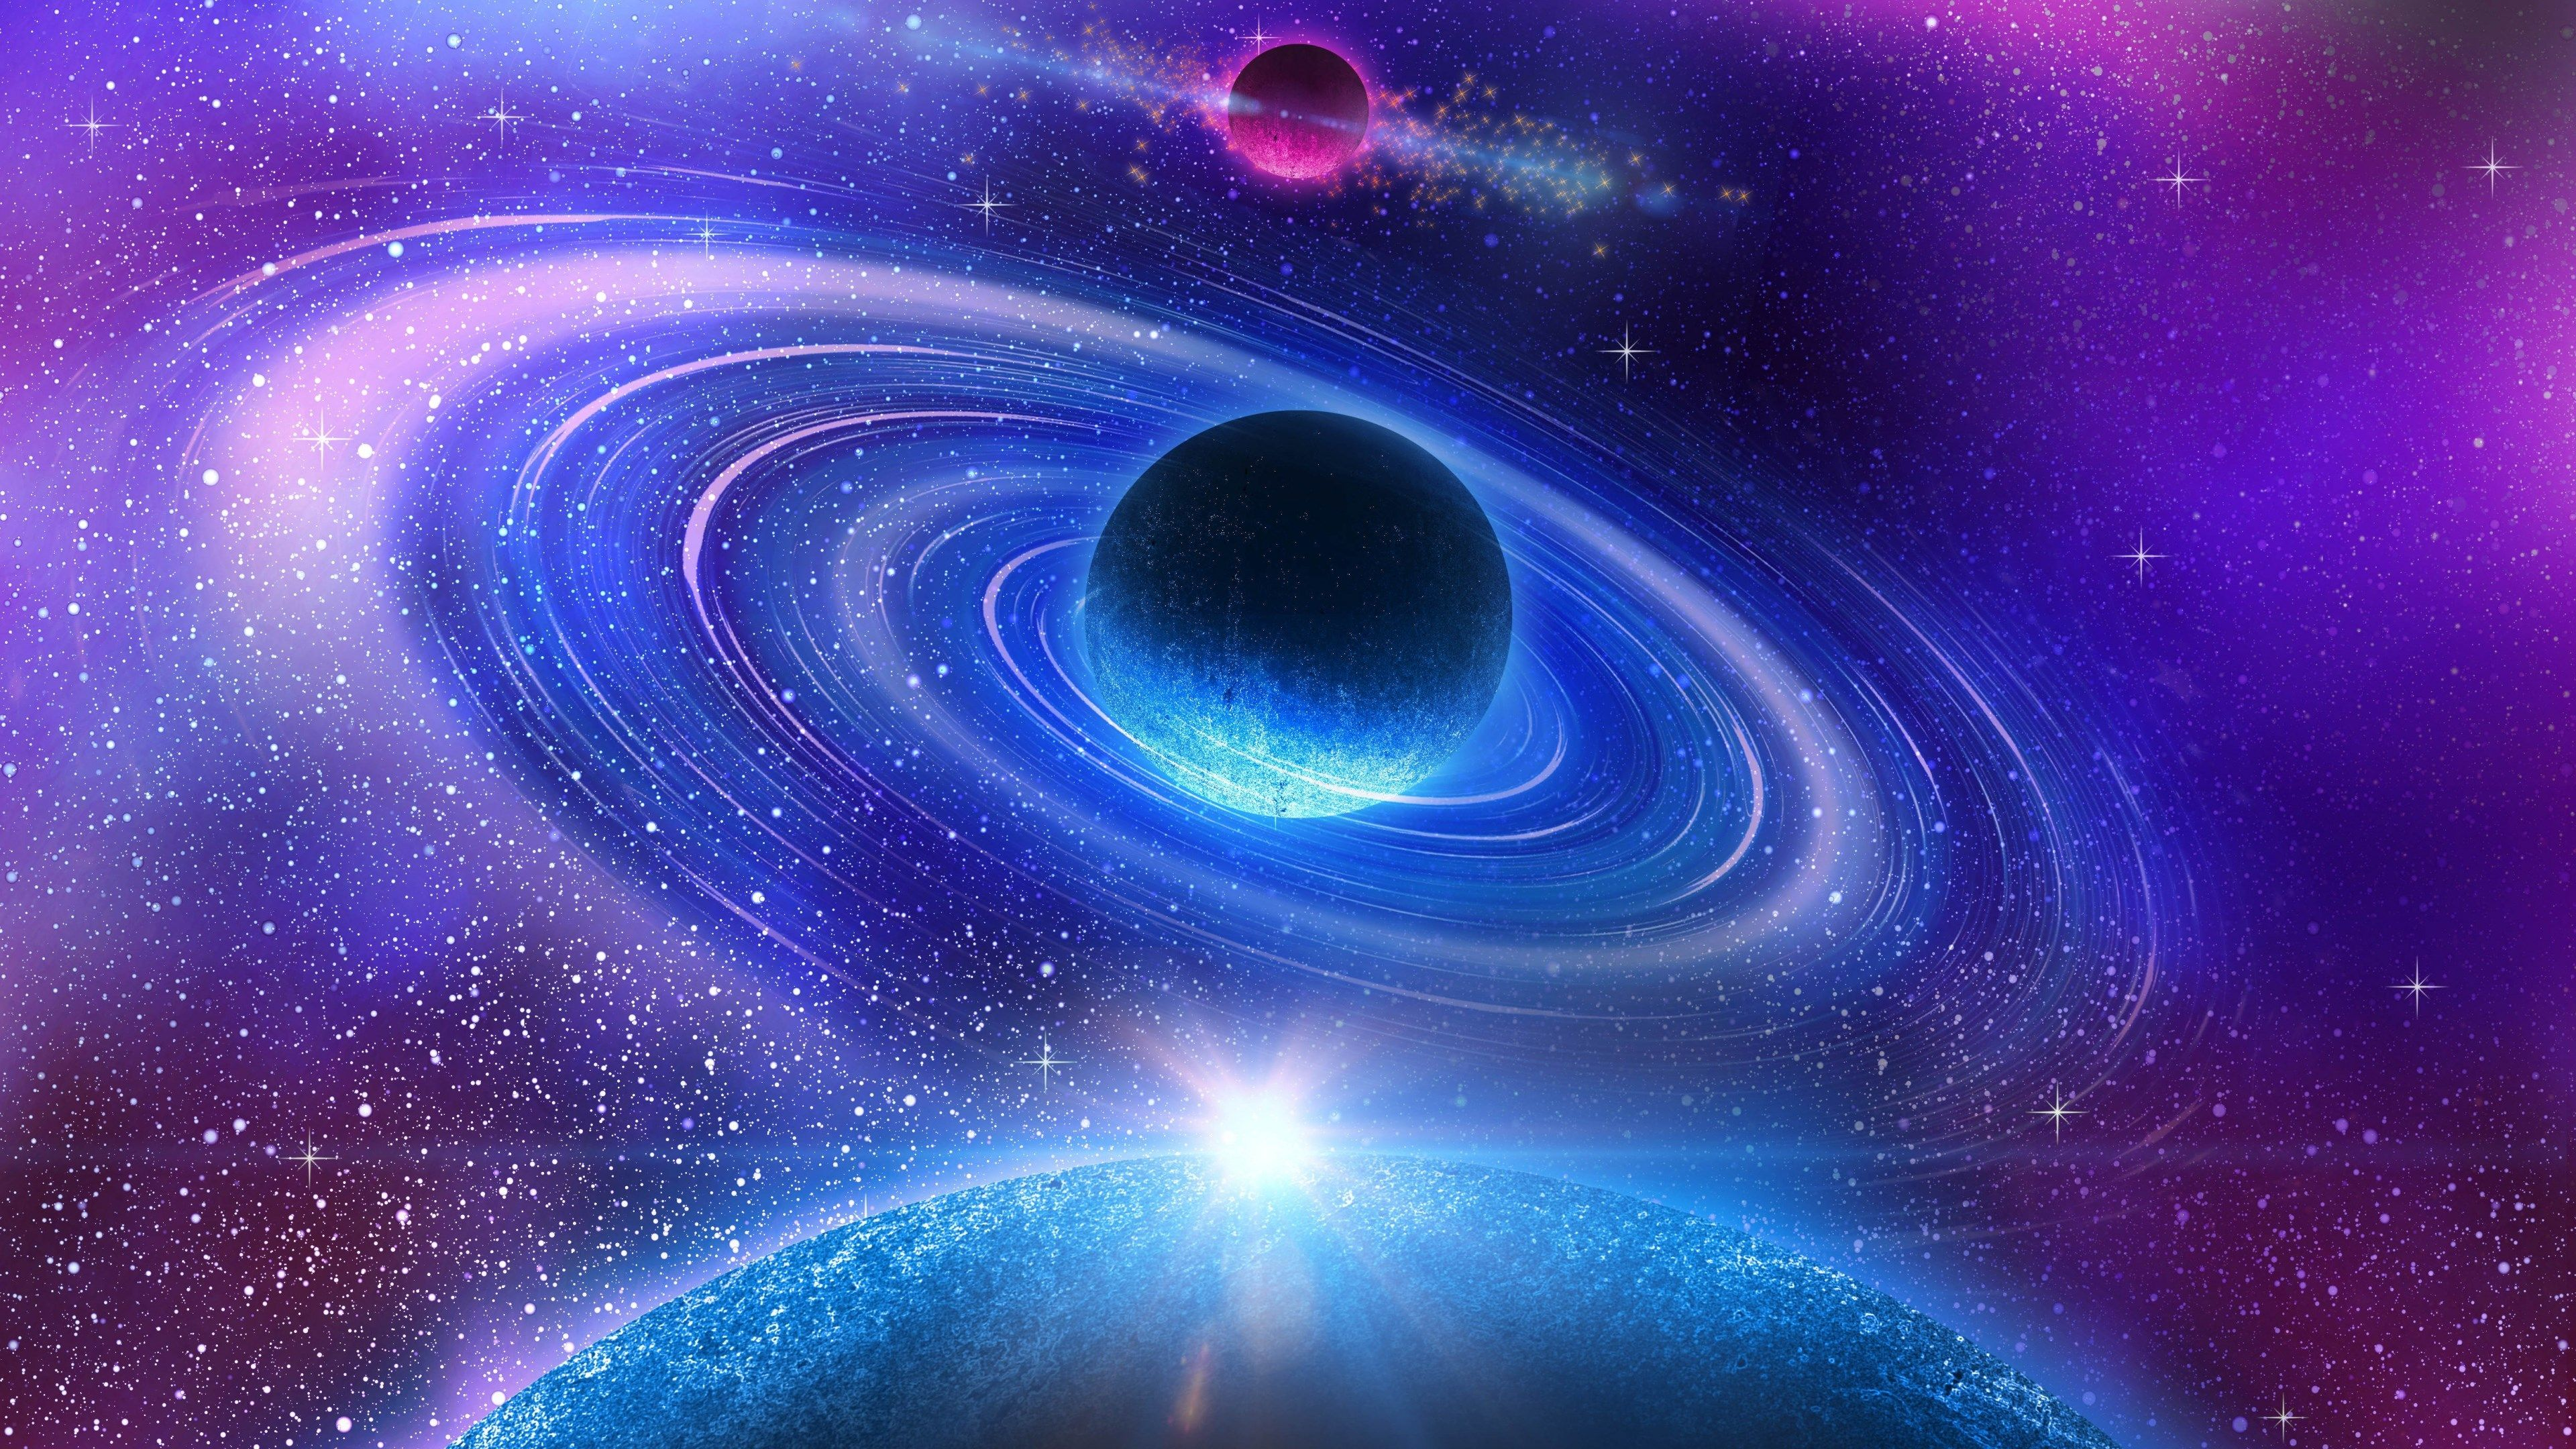 Space Hd Wallpapers Best Cool Galaxy Wallpapers Galaxy Wallpaper Cute Wallpapers For Computer